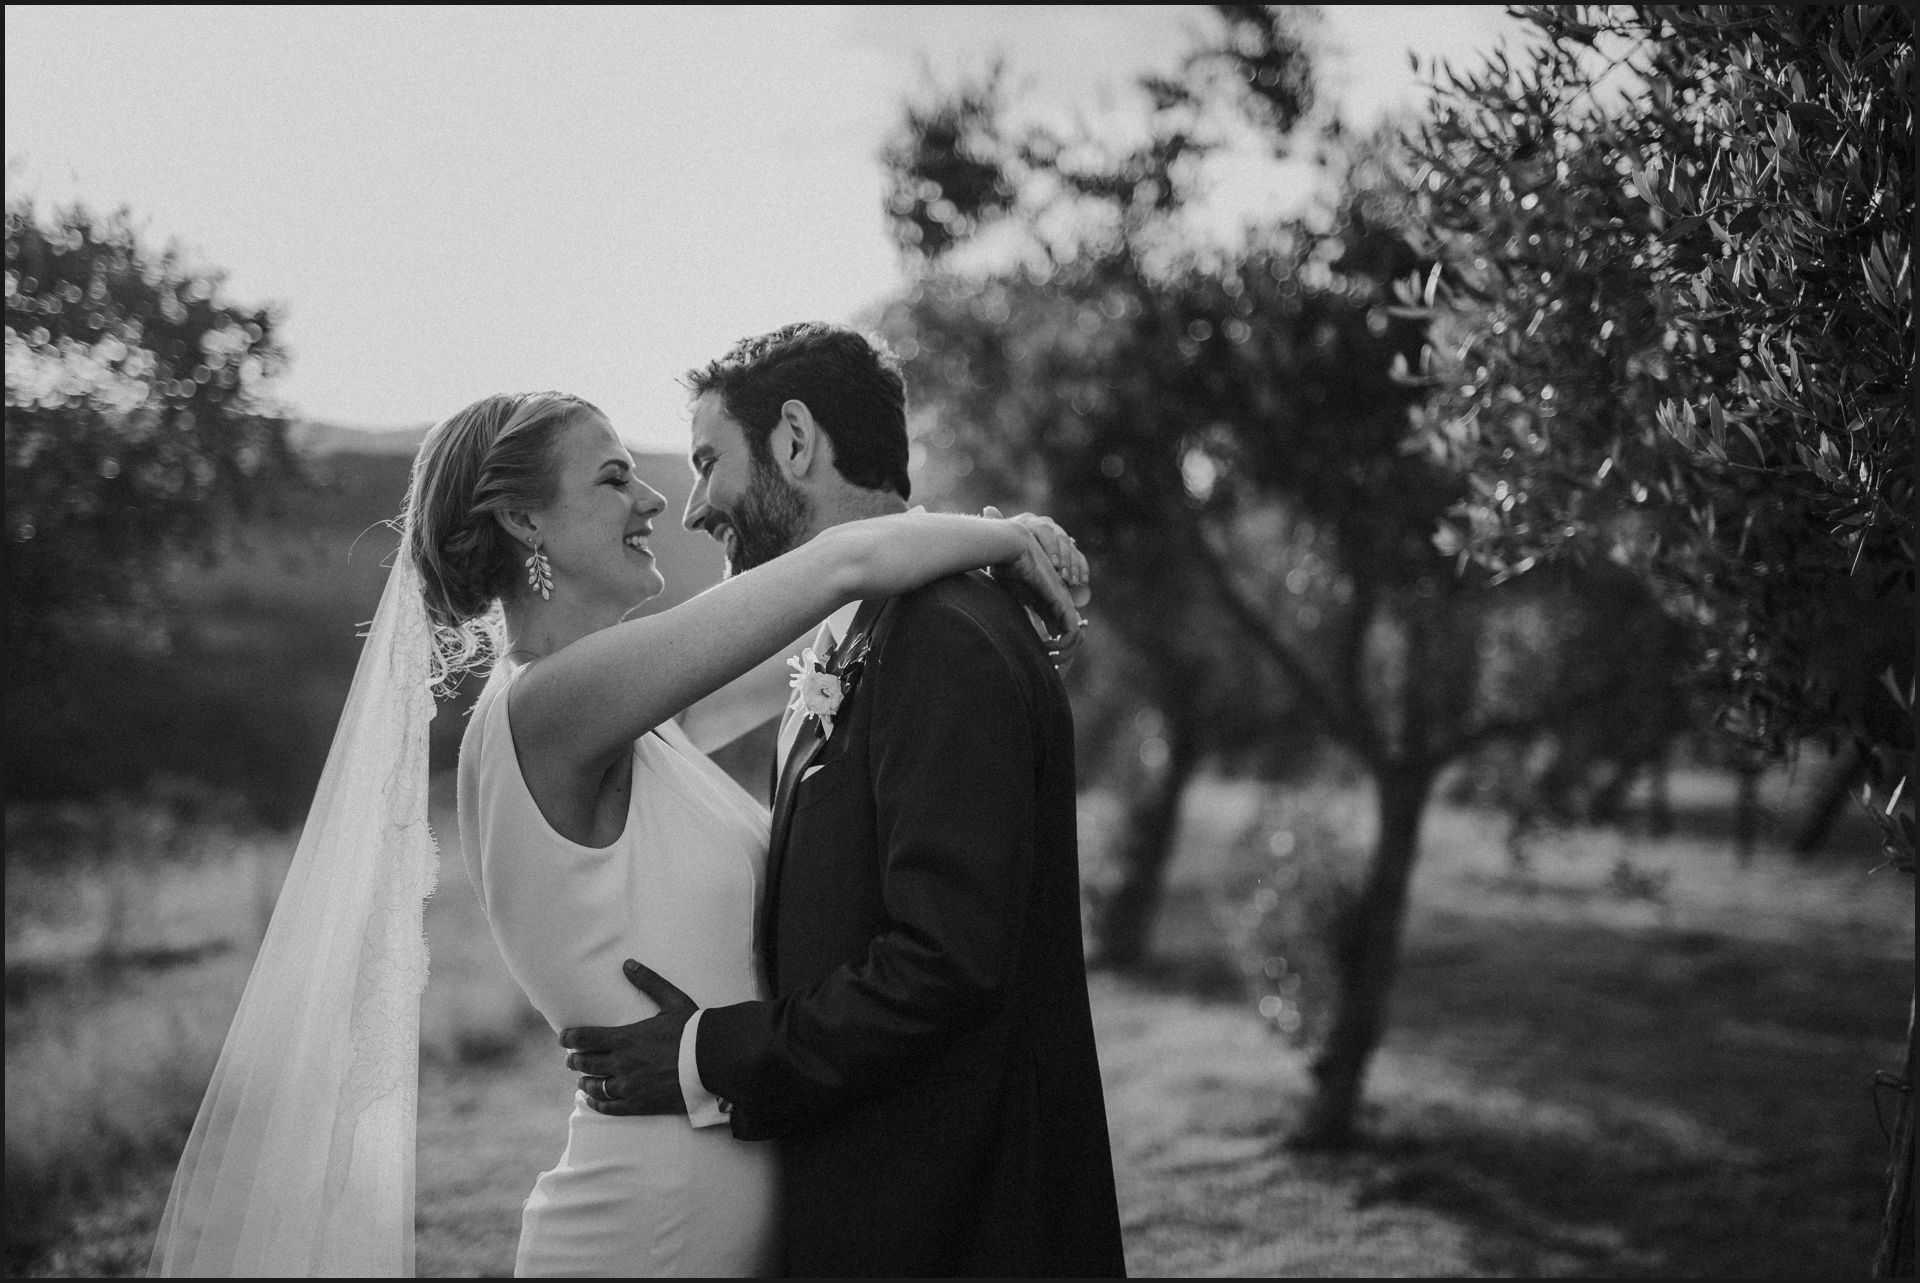 tenuta di canonica, umbria, wedding, bride, groom, love, black and white, funny